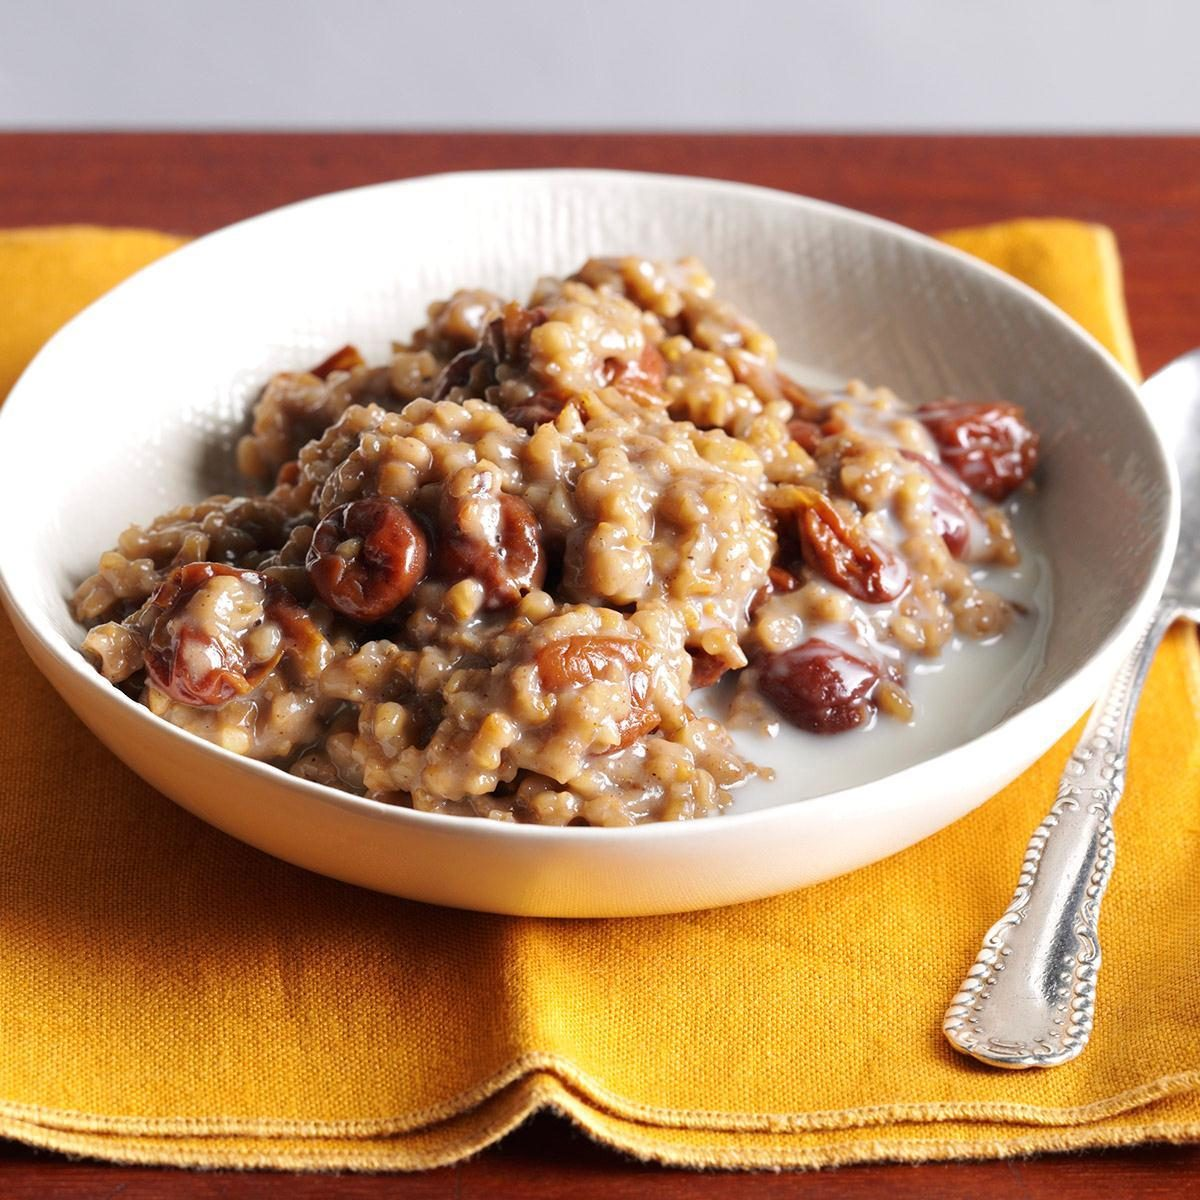 Pressure Cooker Cherry-Almond Oatmeal